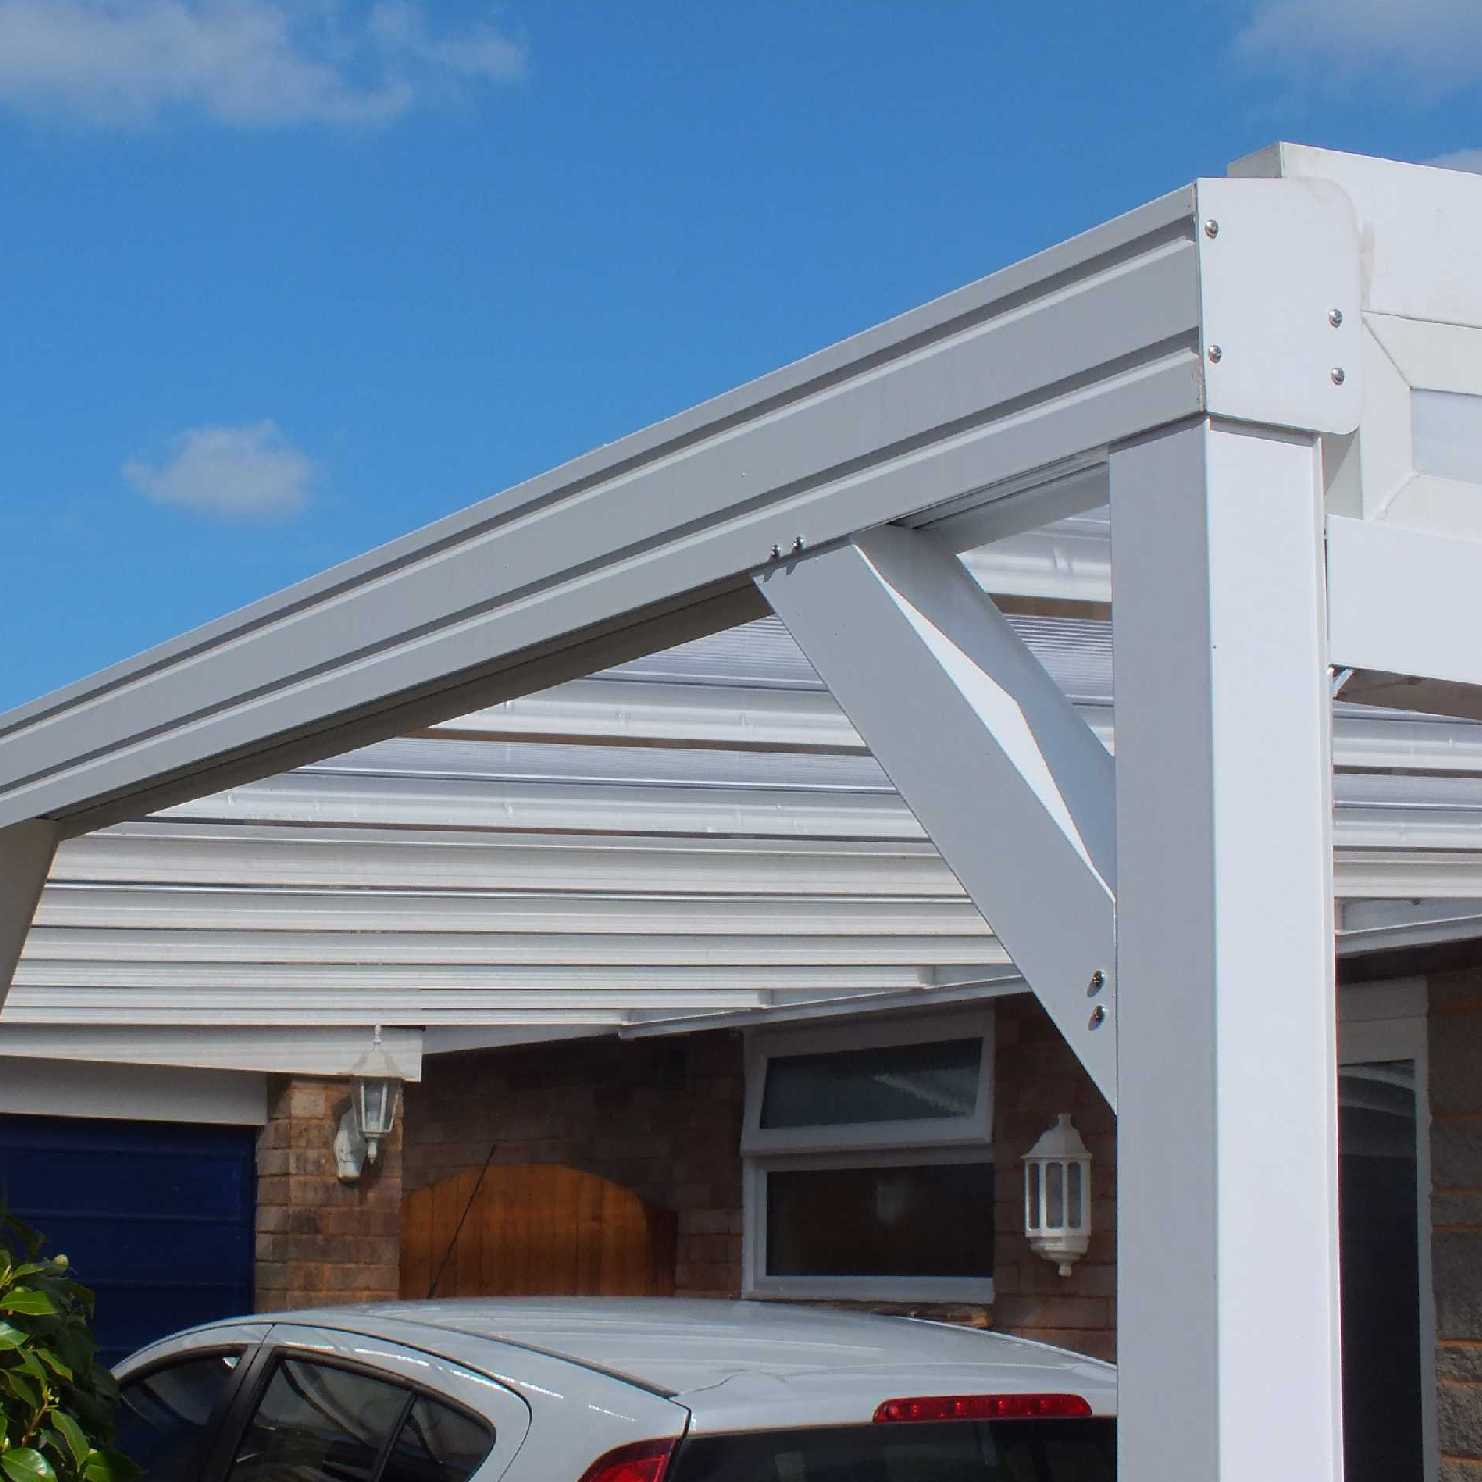 Great deals on Omega Smart Lean-To Canopy with 16mm Polycarbonate Glazing - 12.0m (W) x 2.5m (P), (5) Supporting Posts